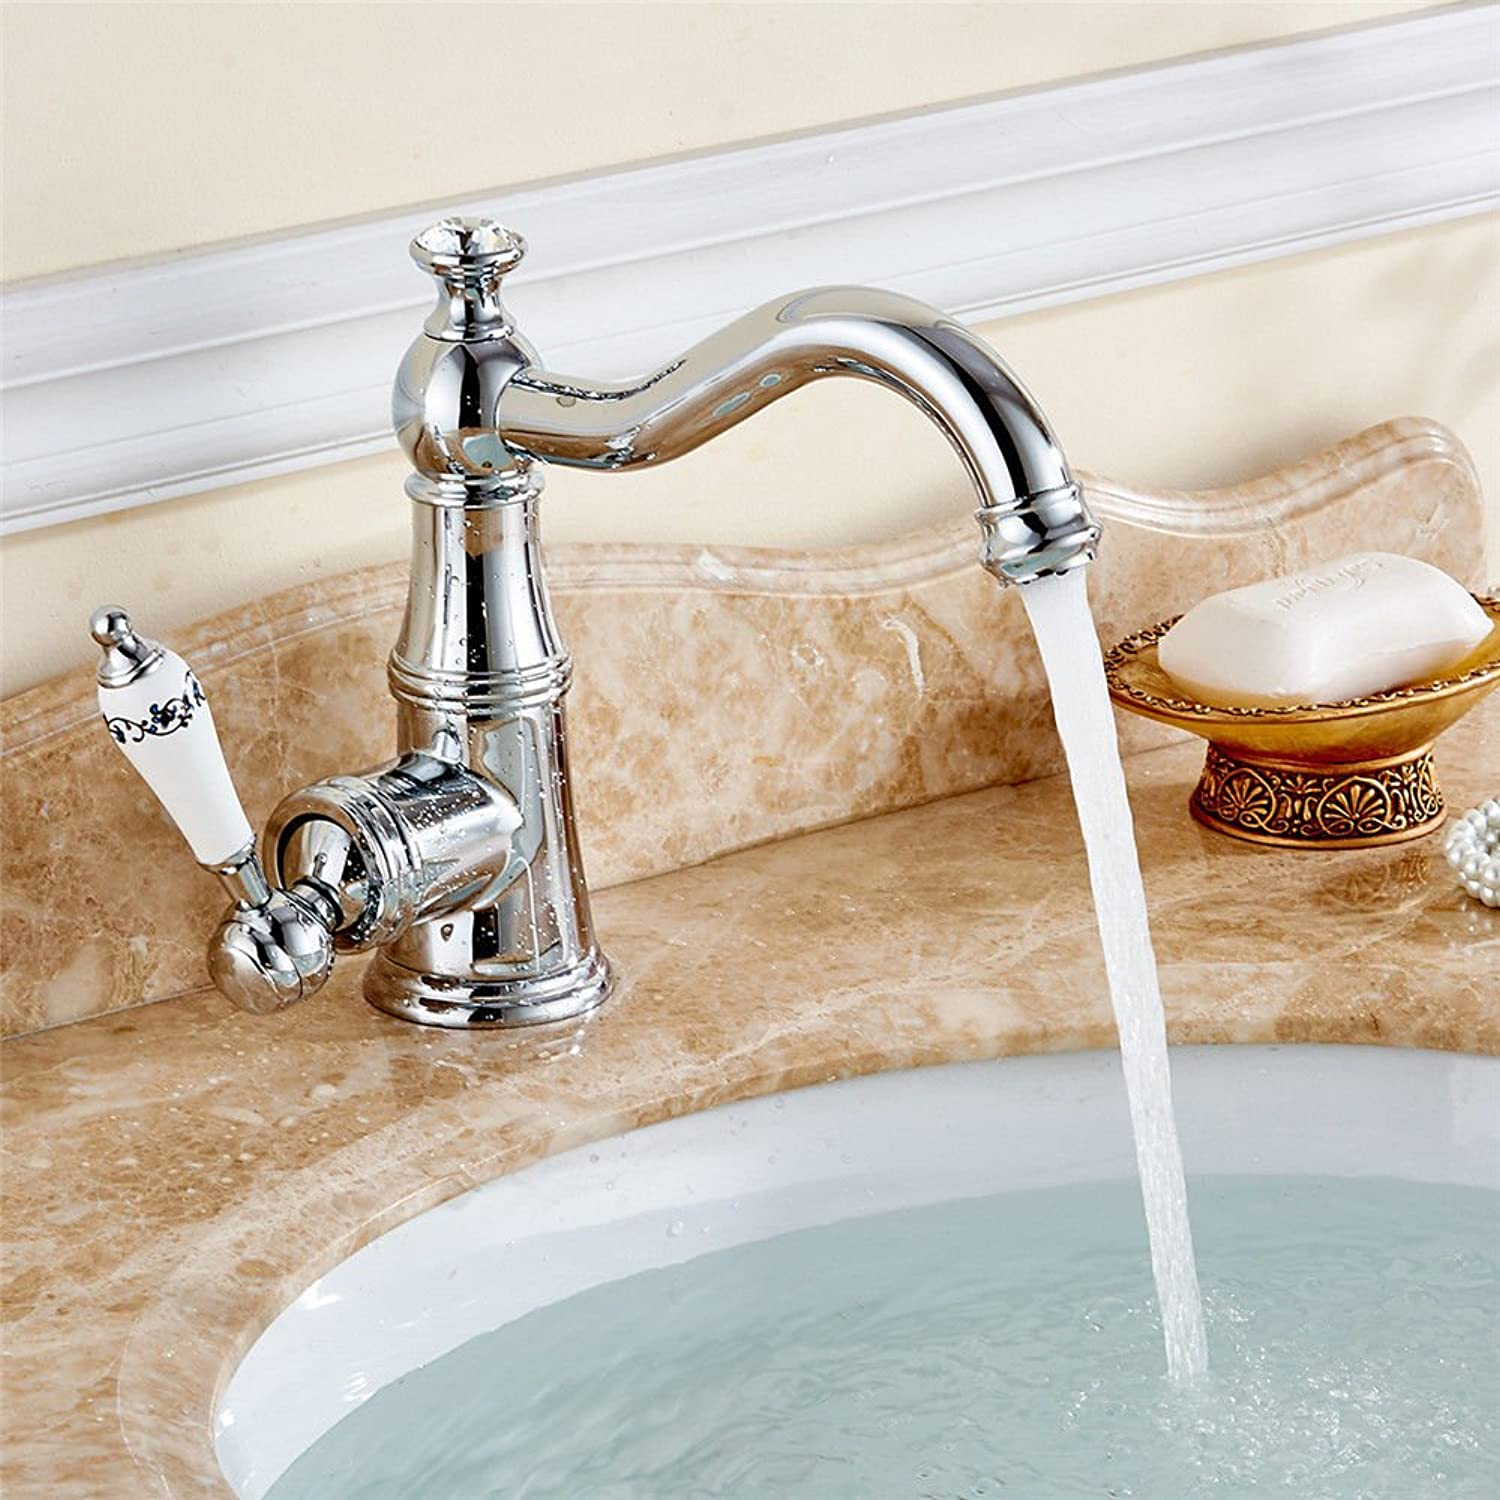 Lpophy Bathroom Sink Mixer Taps Faucet Bath Waterfall Cold and Hot Water Tap for Washroom Bathroom and Kitchen Copper Hot and Cold Water Can Be redated B